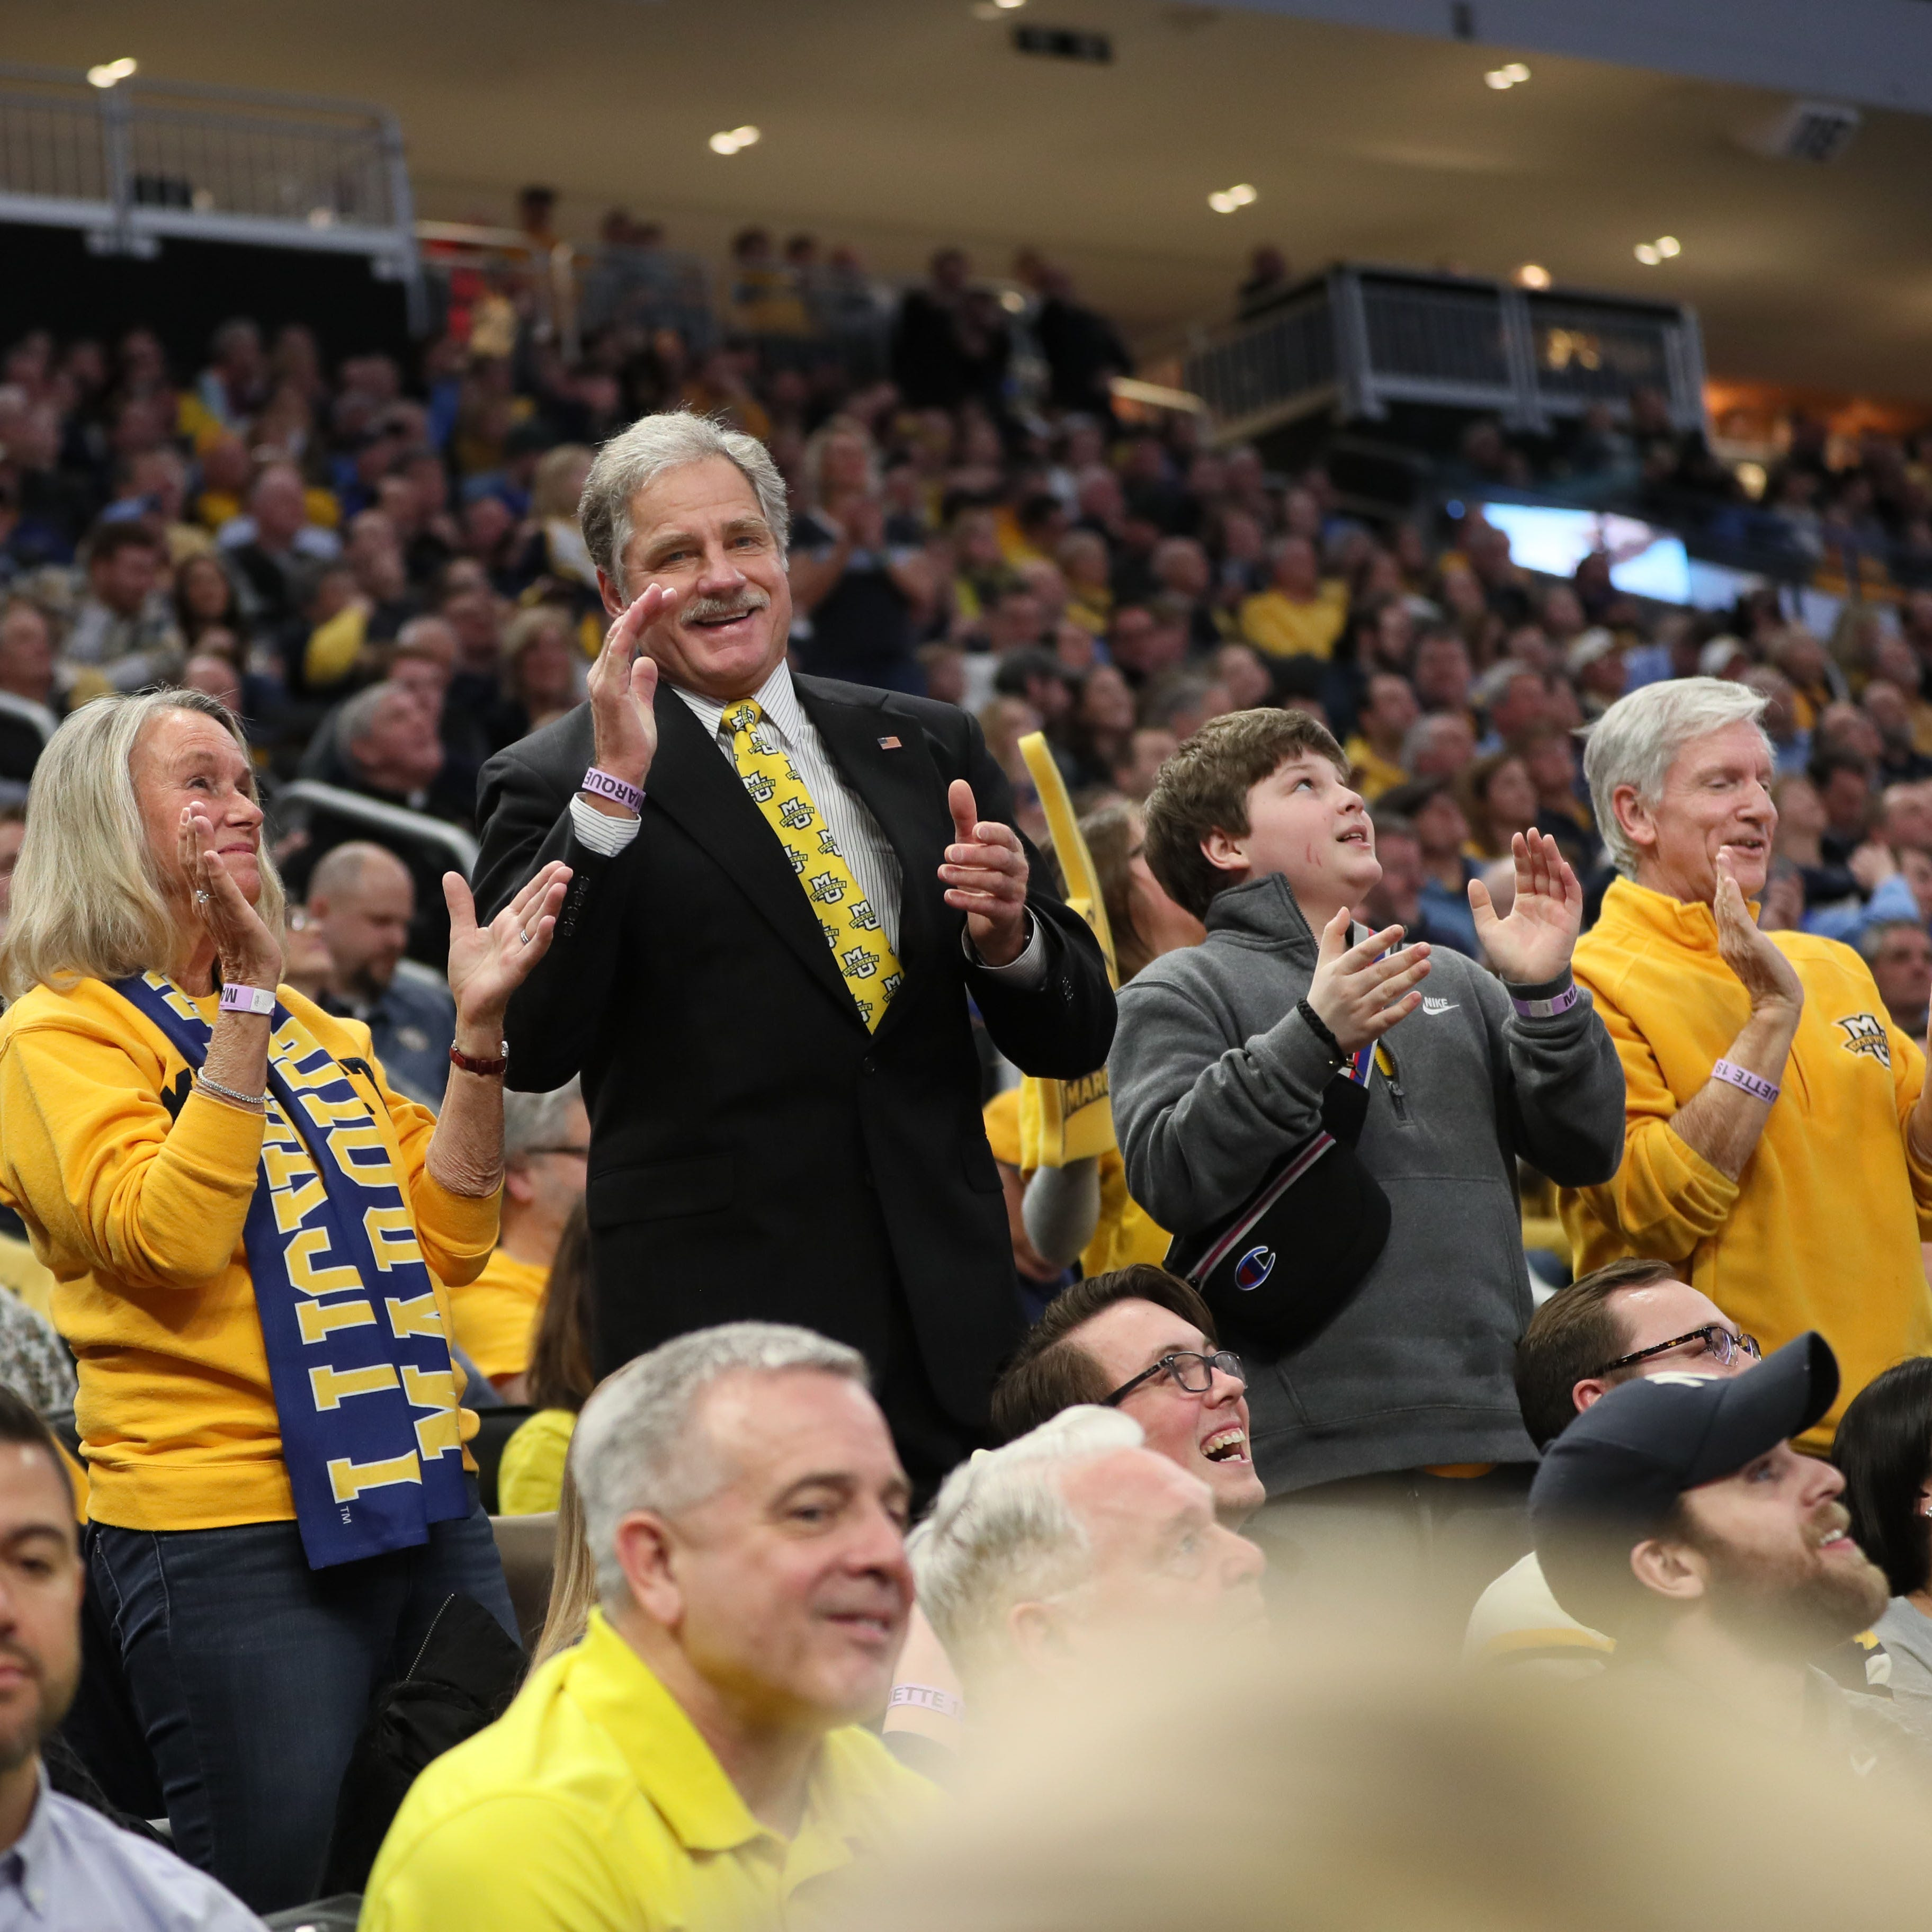 Stingl: Marquette fan, 68, is still the 'jump around guy' after 12 years, and the students love it